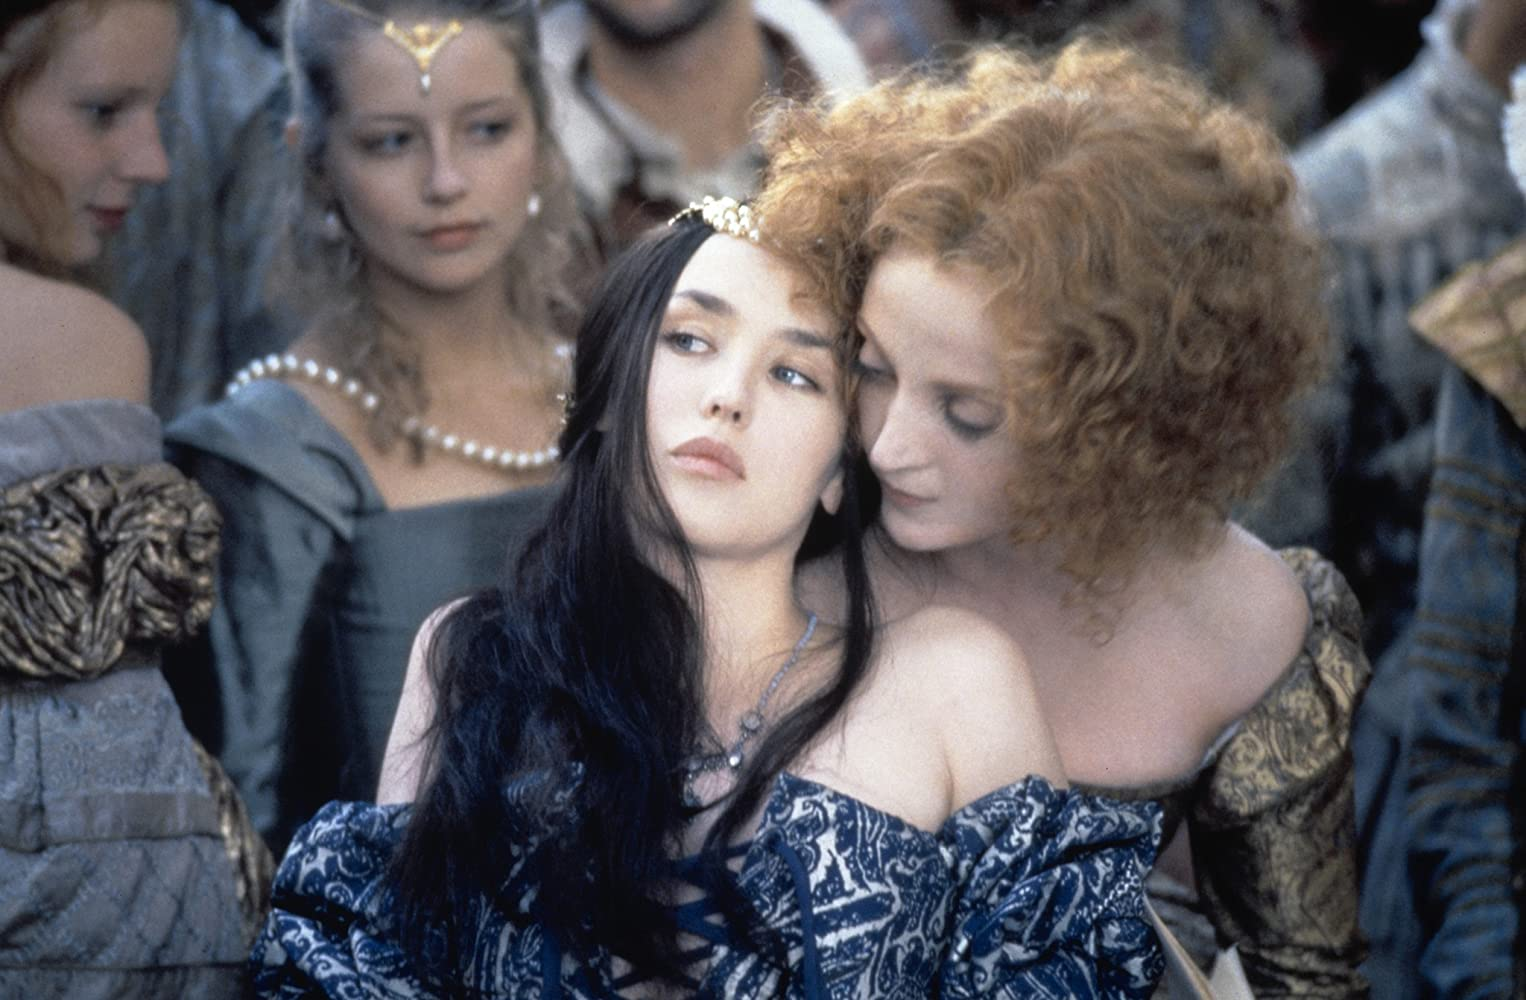 Isabelle Adjani, Dominique Blanc, and Laure Marsac in La Reine Margot (1994)